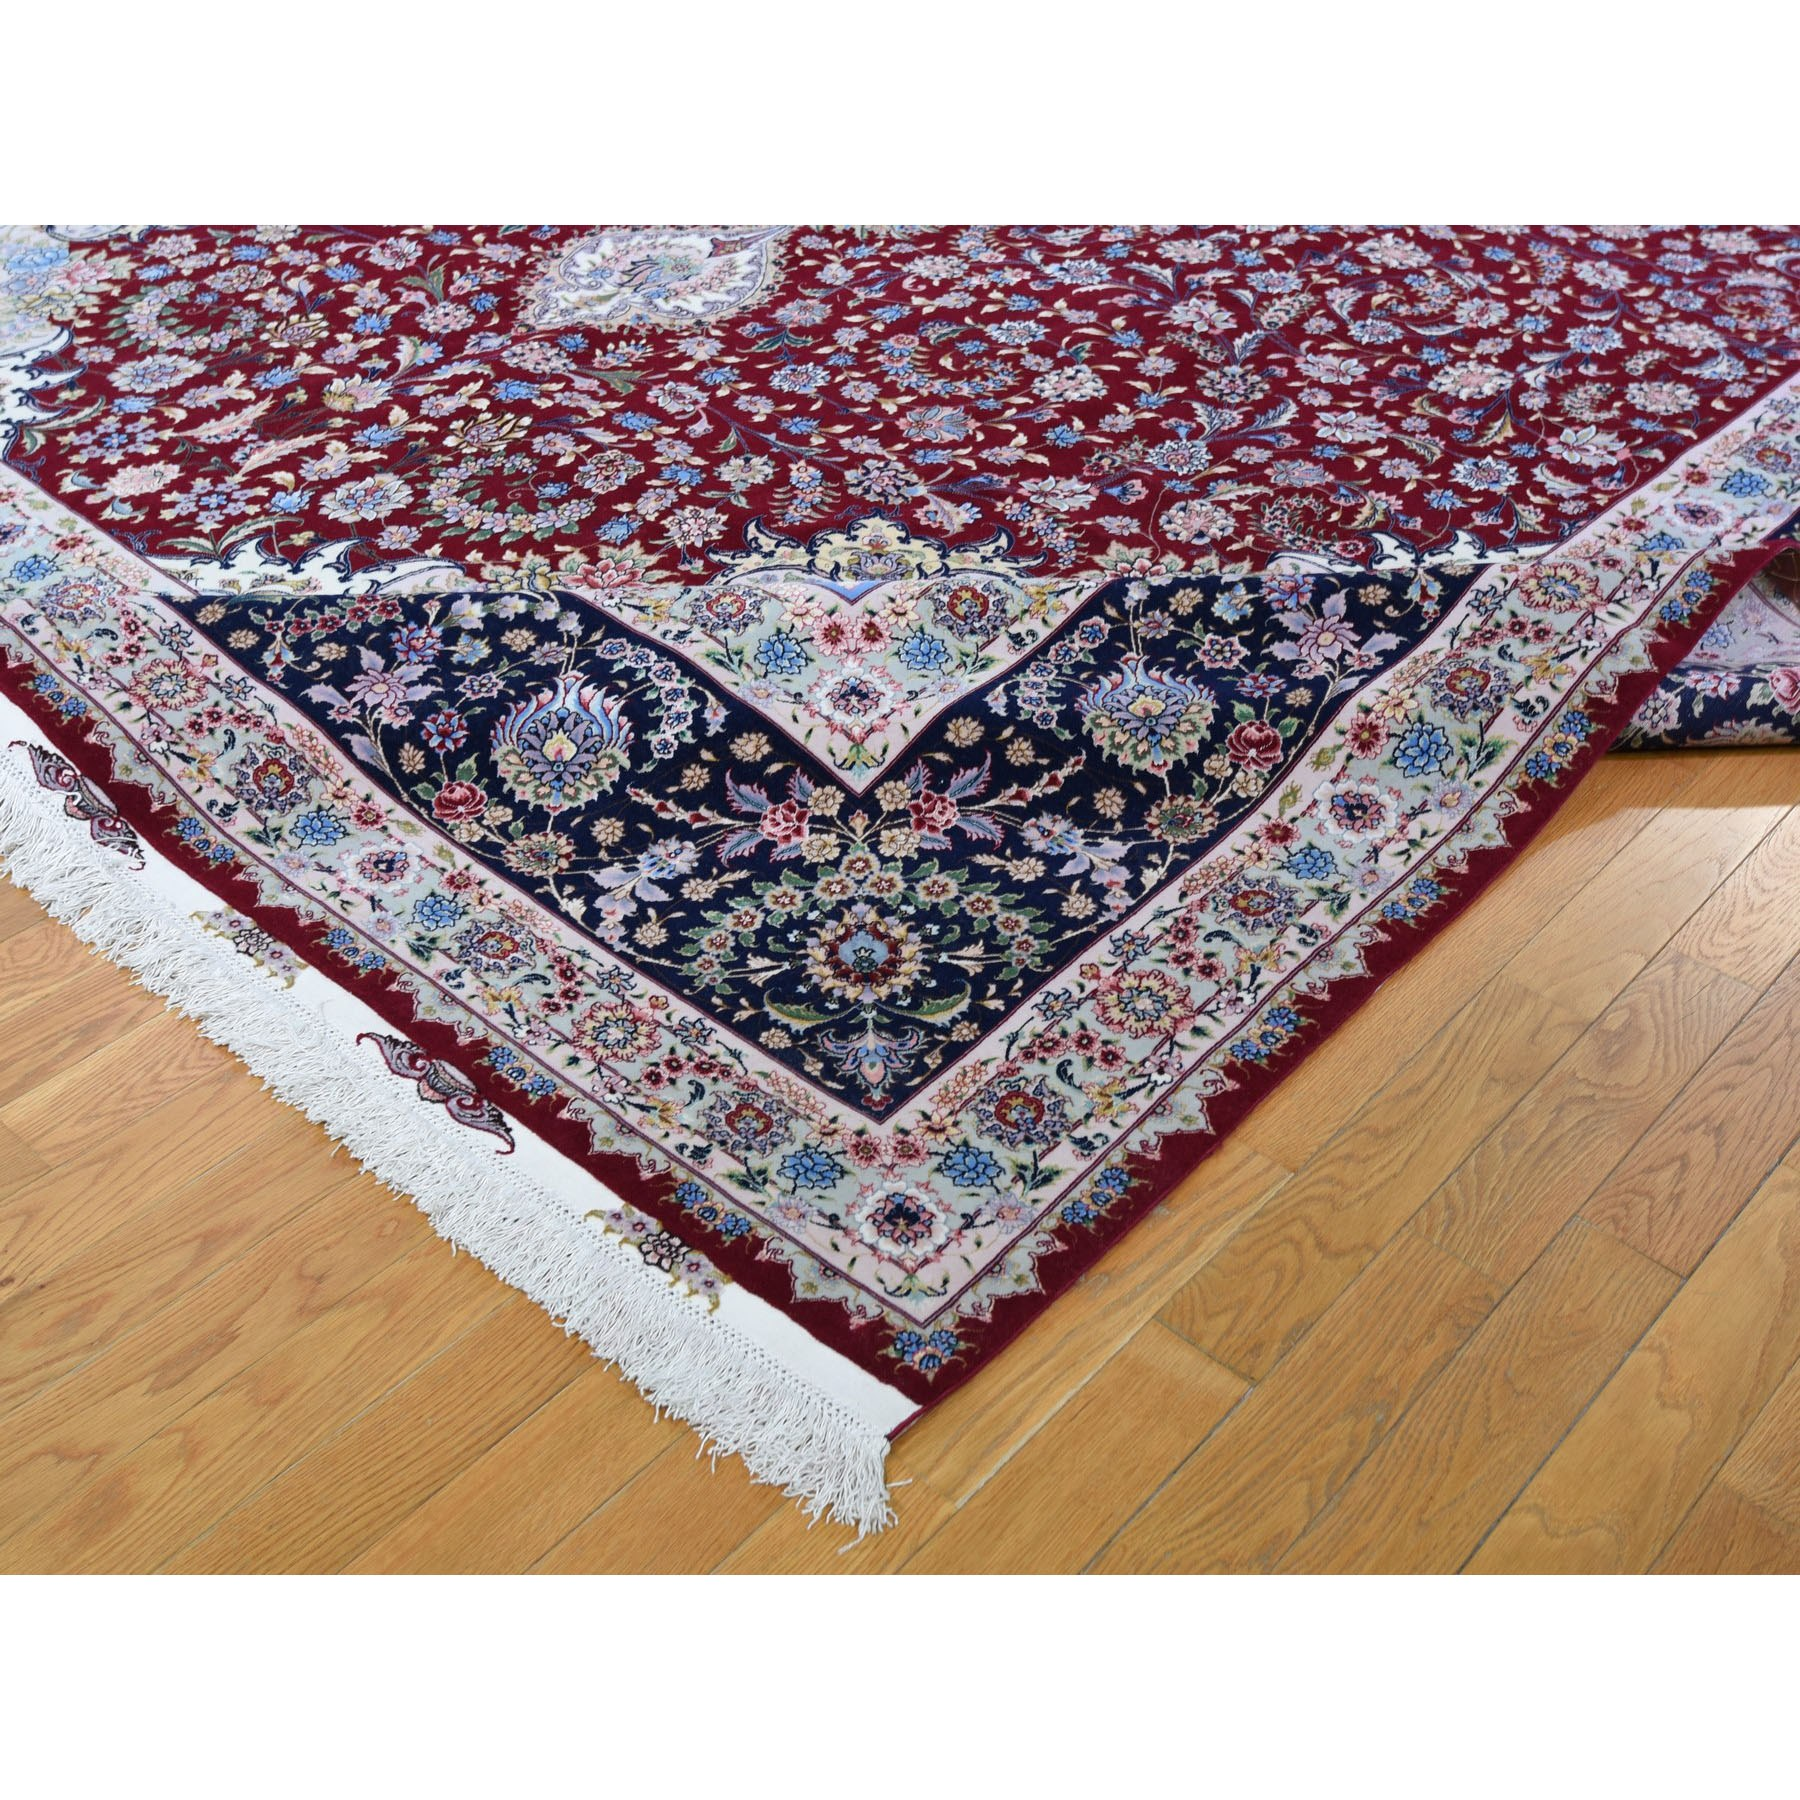 11-6 x16-8  Red Oversized New Persian Tabriz 400 KPSI Double Signature Hand Knotted Oriental Rug